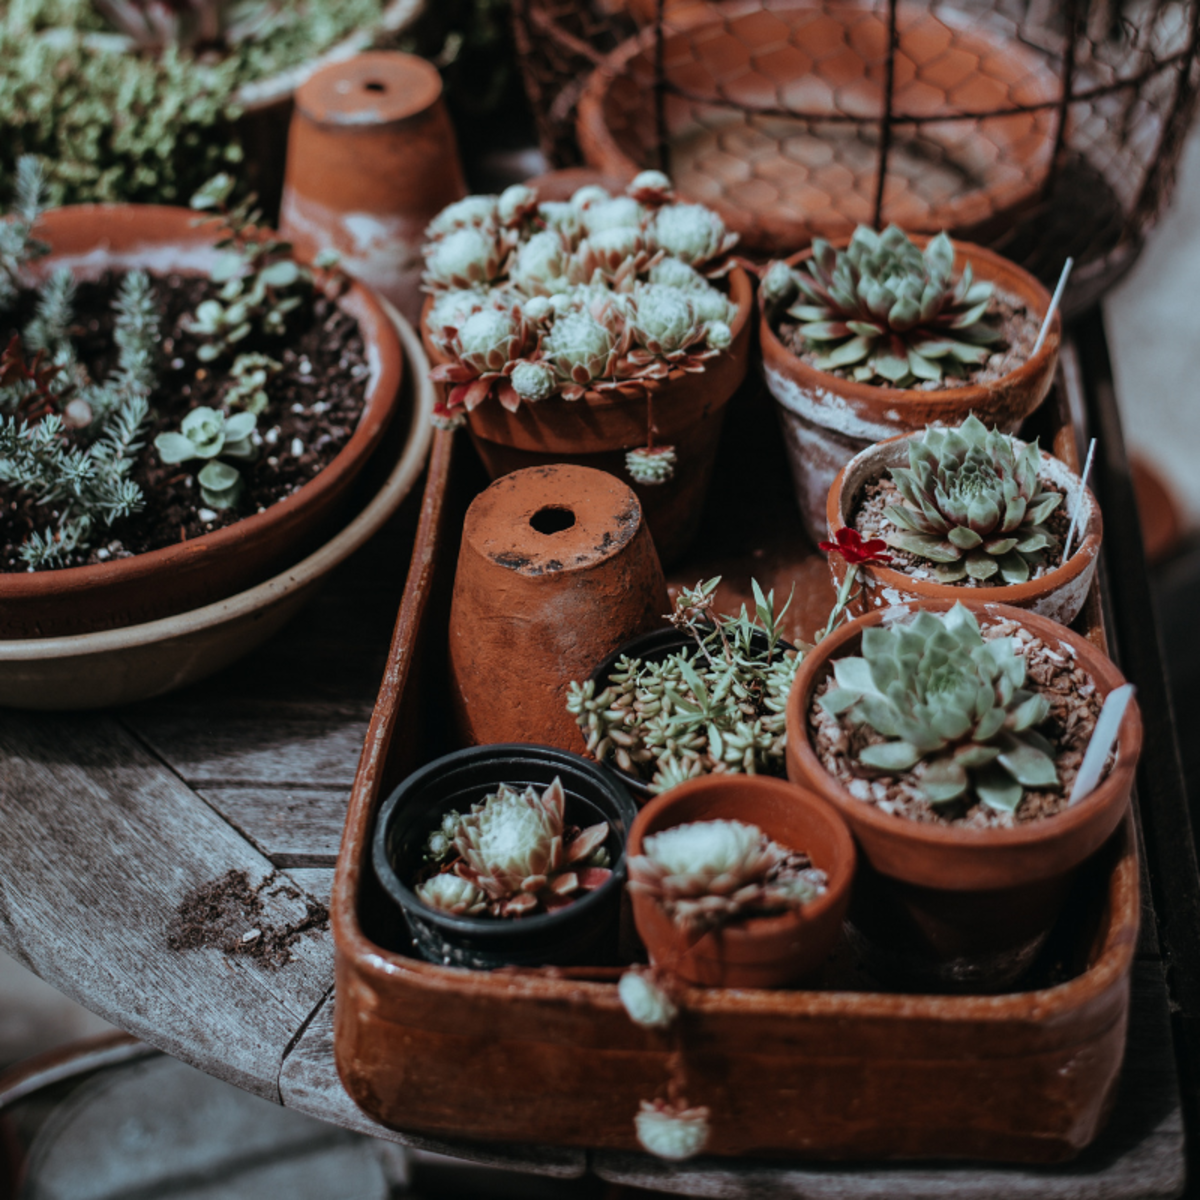 Caring for plants can be a spiritual act.